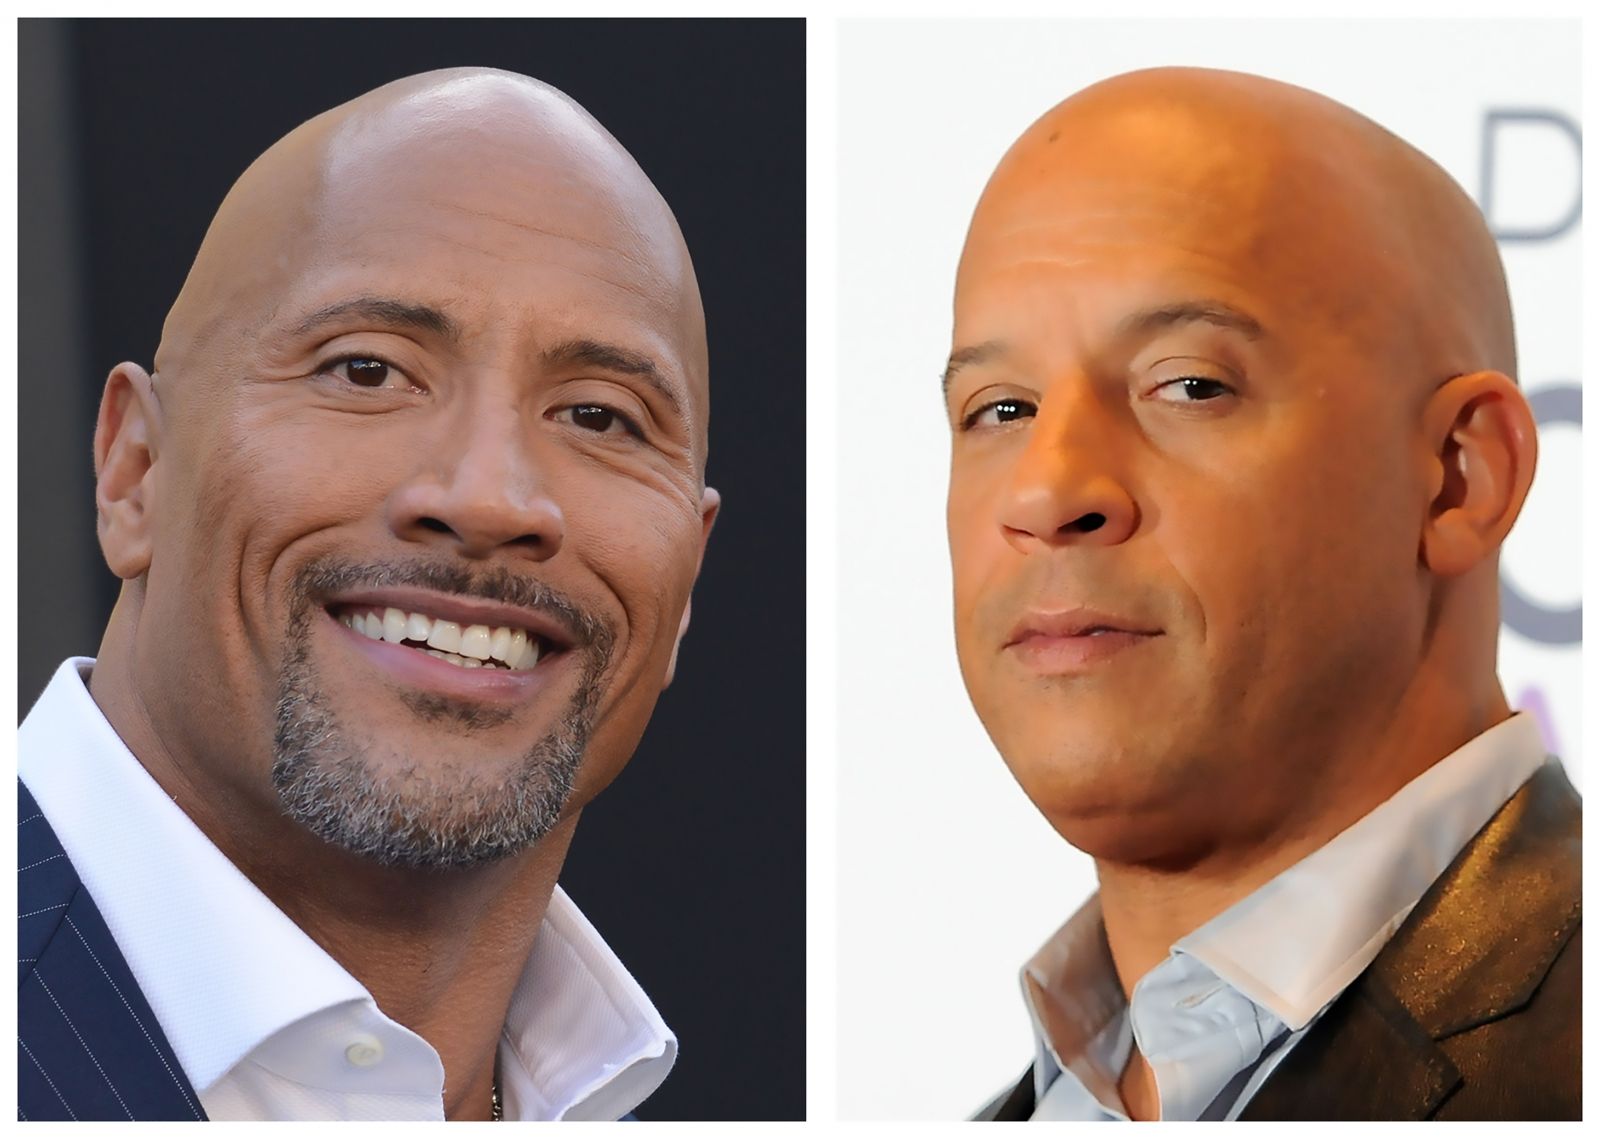 Fast And Furious 9: Dwayne Johnson and Vin Diesel may return as Hobbs and Dom amid feud